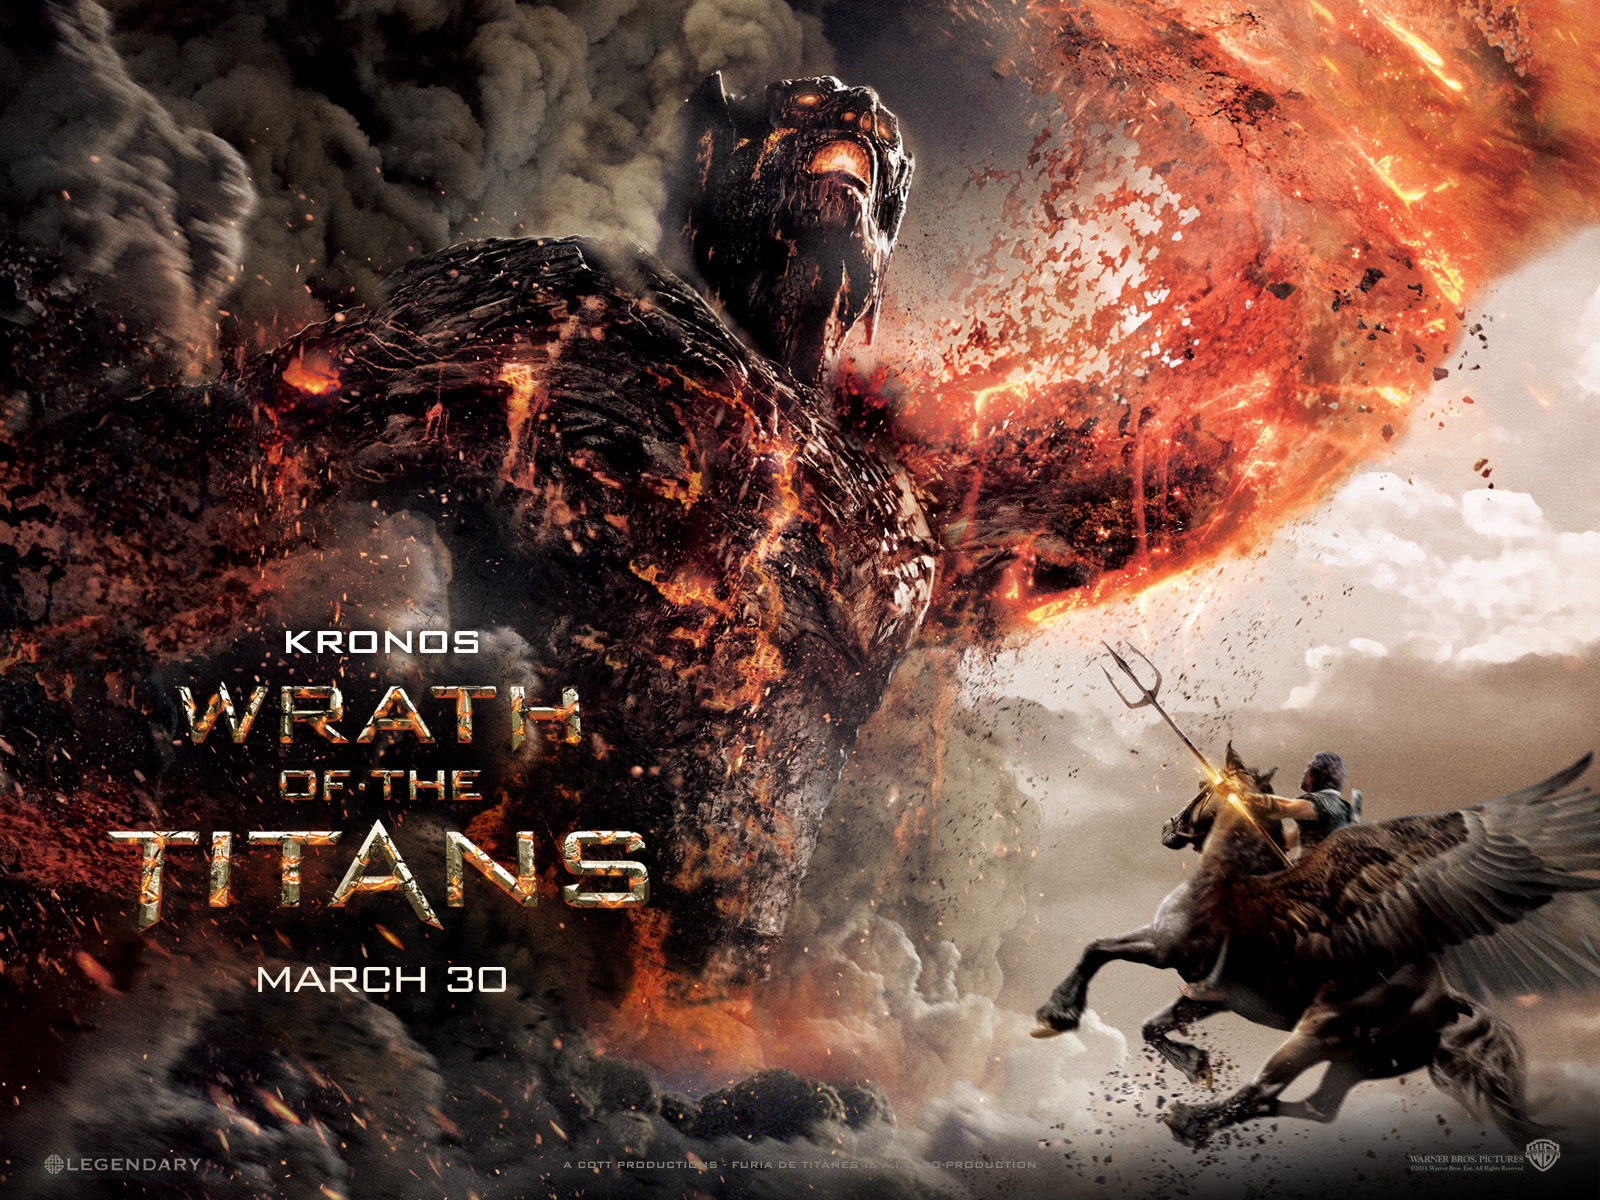 http://2.bp.blogspot.com/-TqnGDc0G7cc/T3qtsogcHmI/AAAAAAAACvo/v-CmU1dtB24/s1600/Wrath_of_the_Titans_Wallpaper_12_1024.jpg